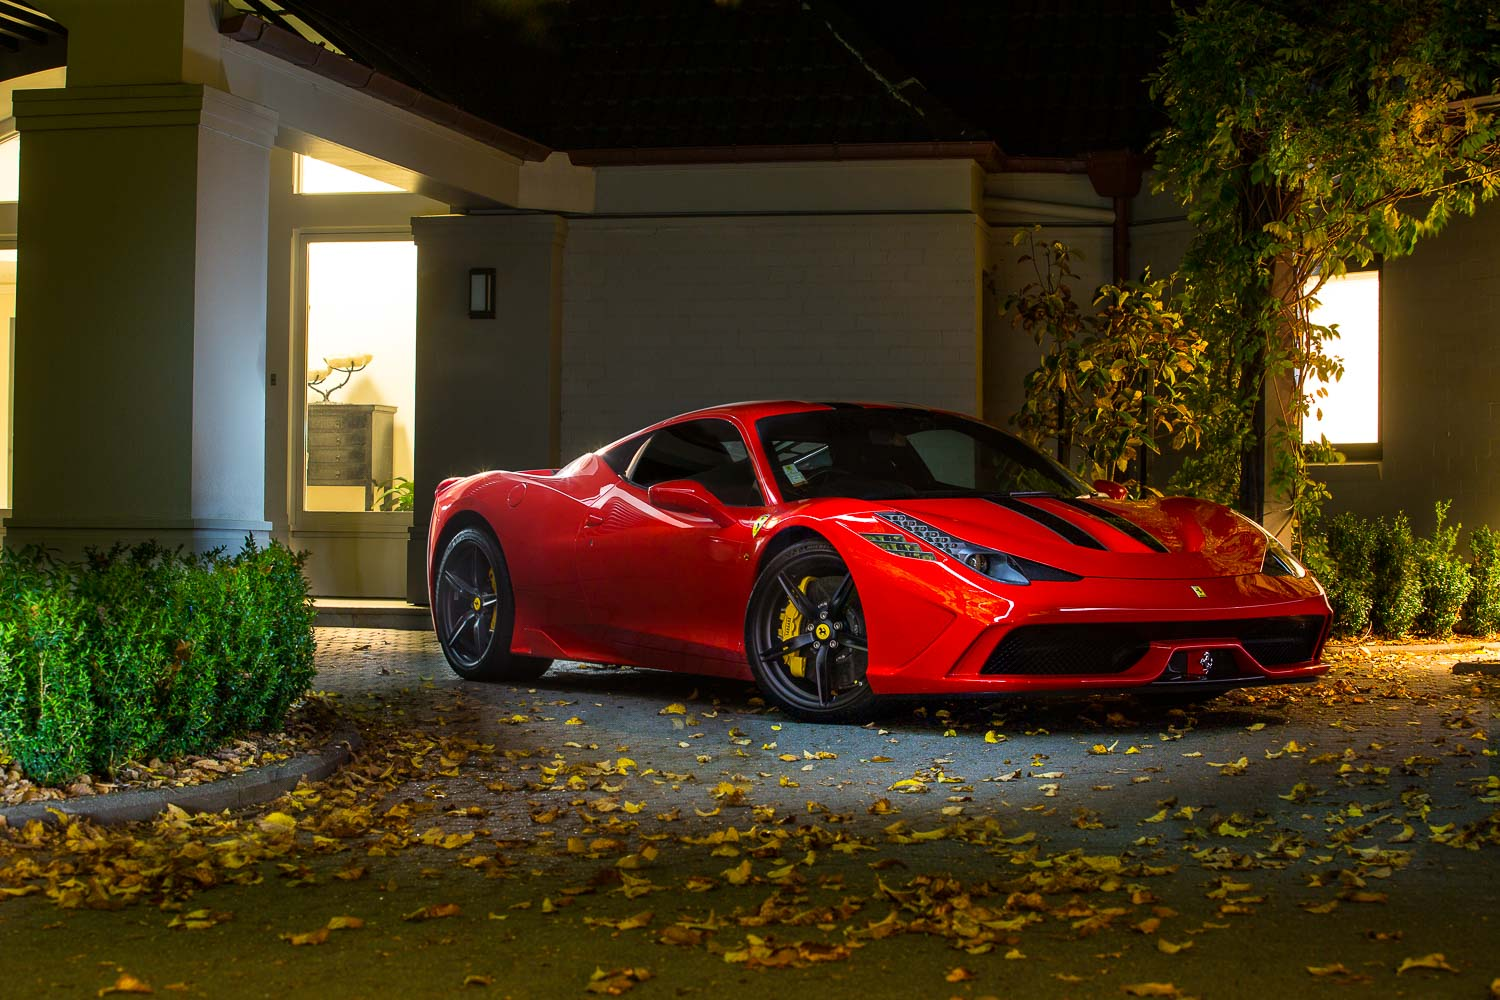 Attractive Seeing Red: The 2014 Ferrari 458 Speciale